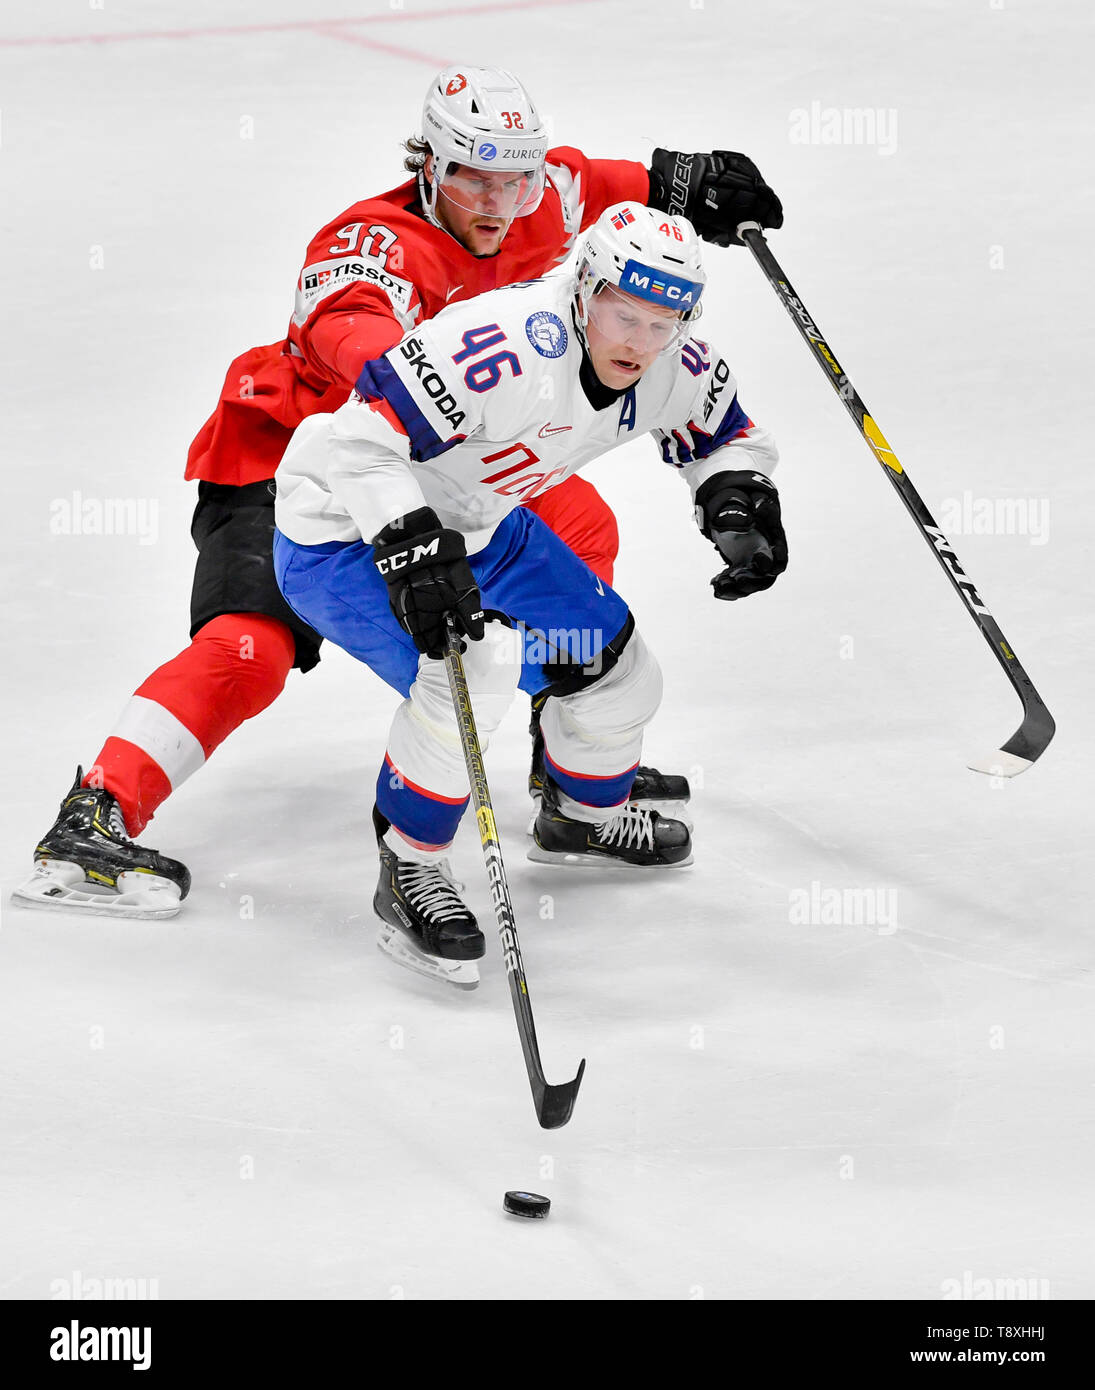 Bratislava, Slovakia. 15th May, 2019. Mathis Olimb (NOR), front, Gaetan Haas (SWE) in action during the match between Switzerland and Norway within the 2019 IIHF World Championship in Bratislava, Slovakia, on May 15, 2019. Credit: Vit Simanek/CTK Photo/Alamy Live News Stock Photo